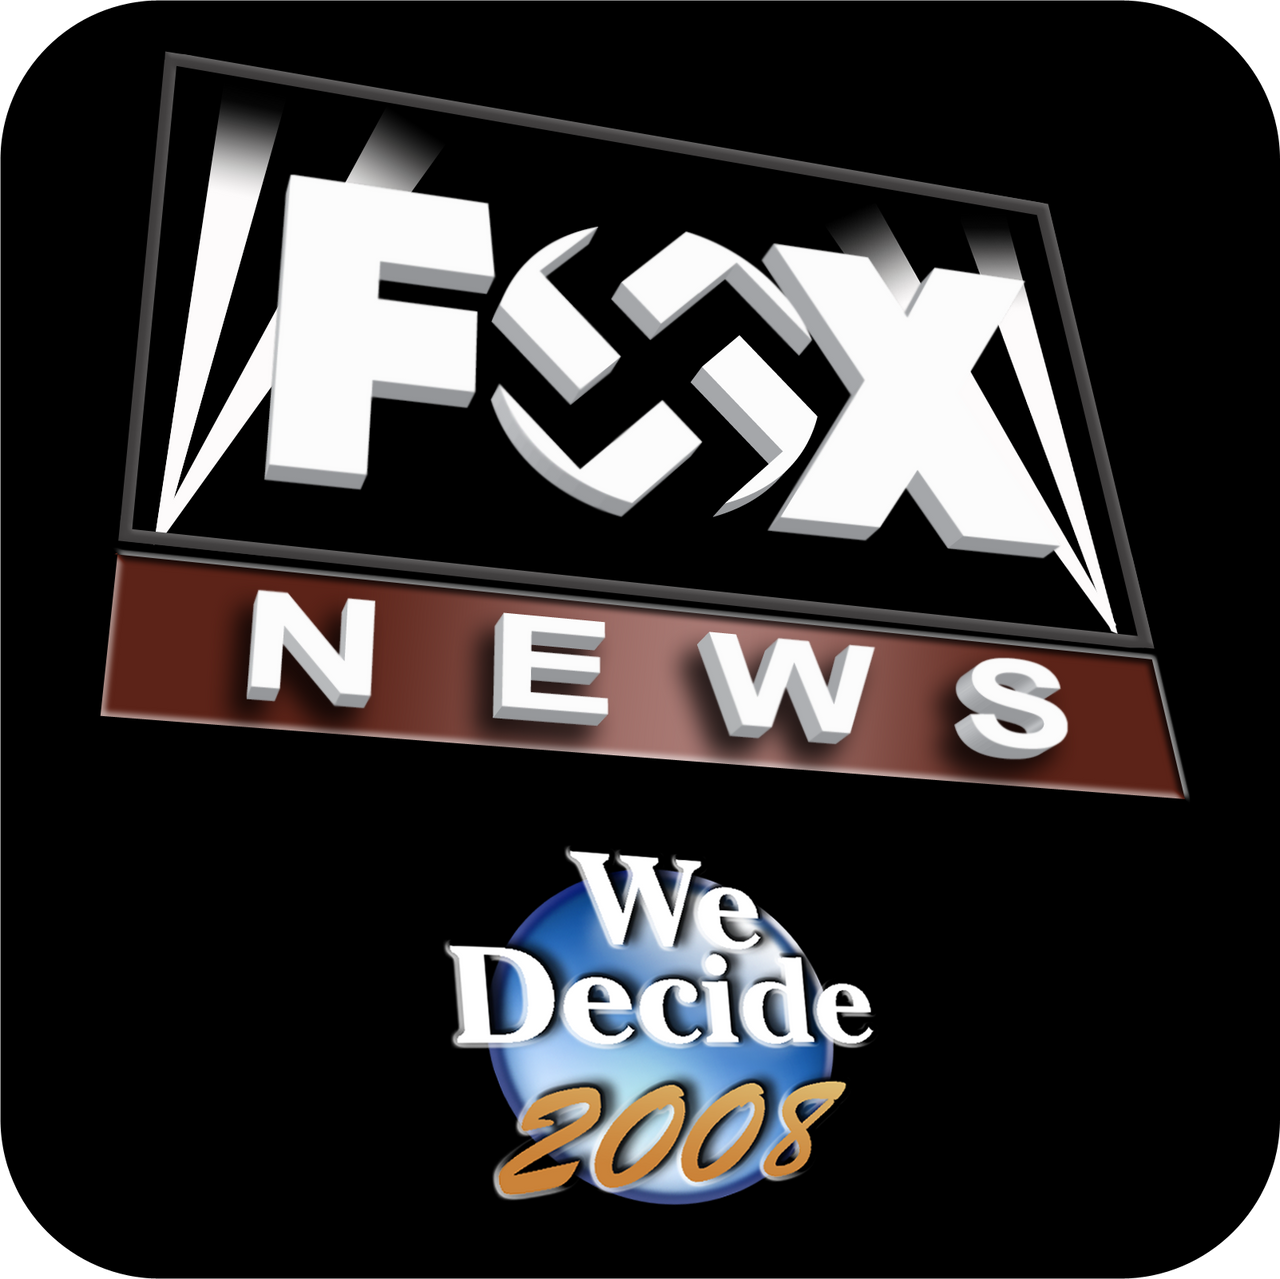 Fox News We Decide 2008 by ayebretwalda